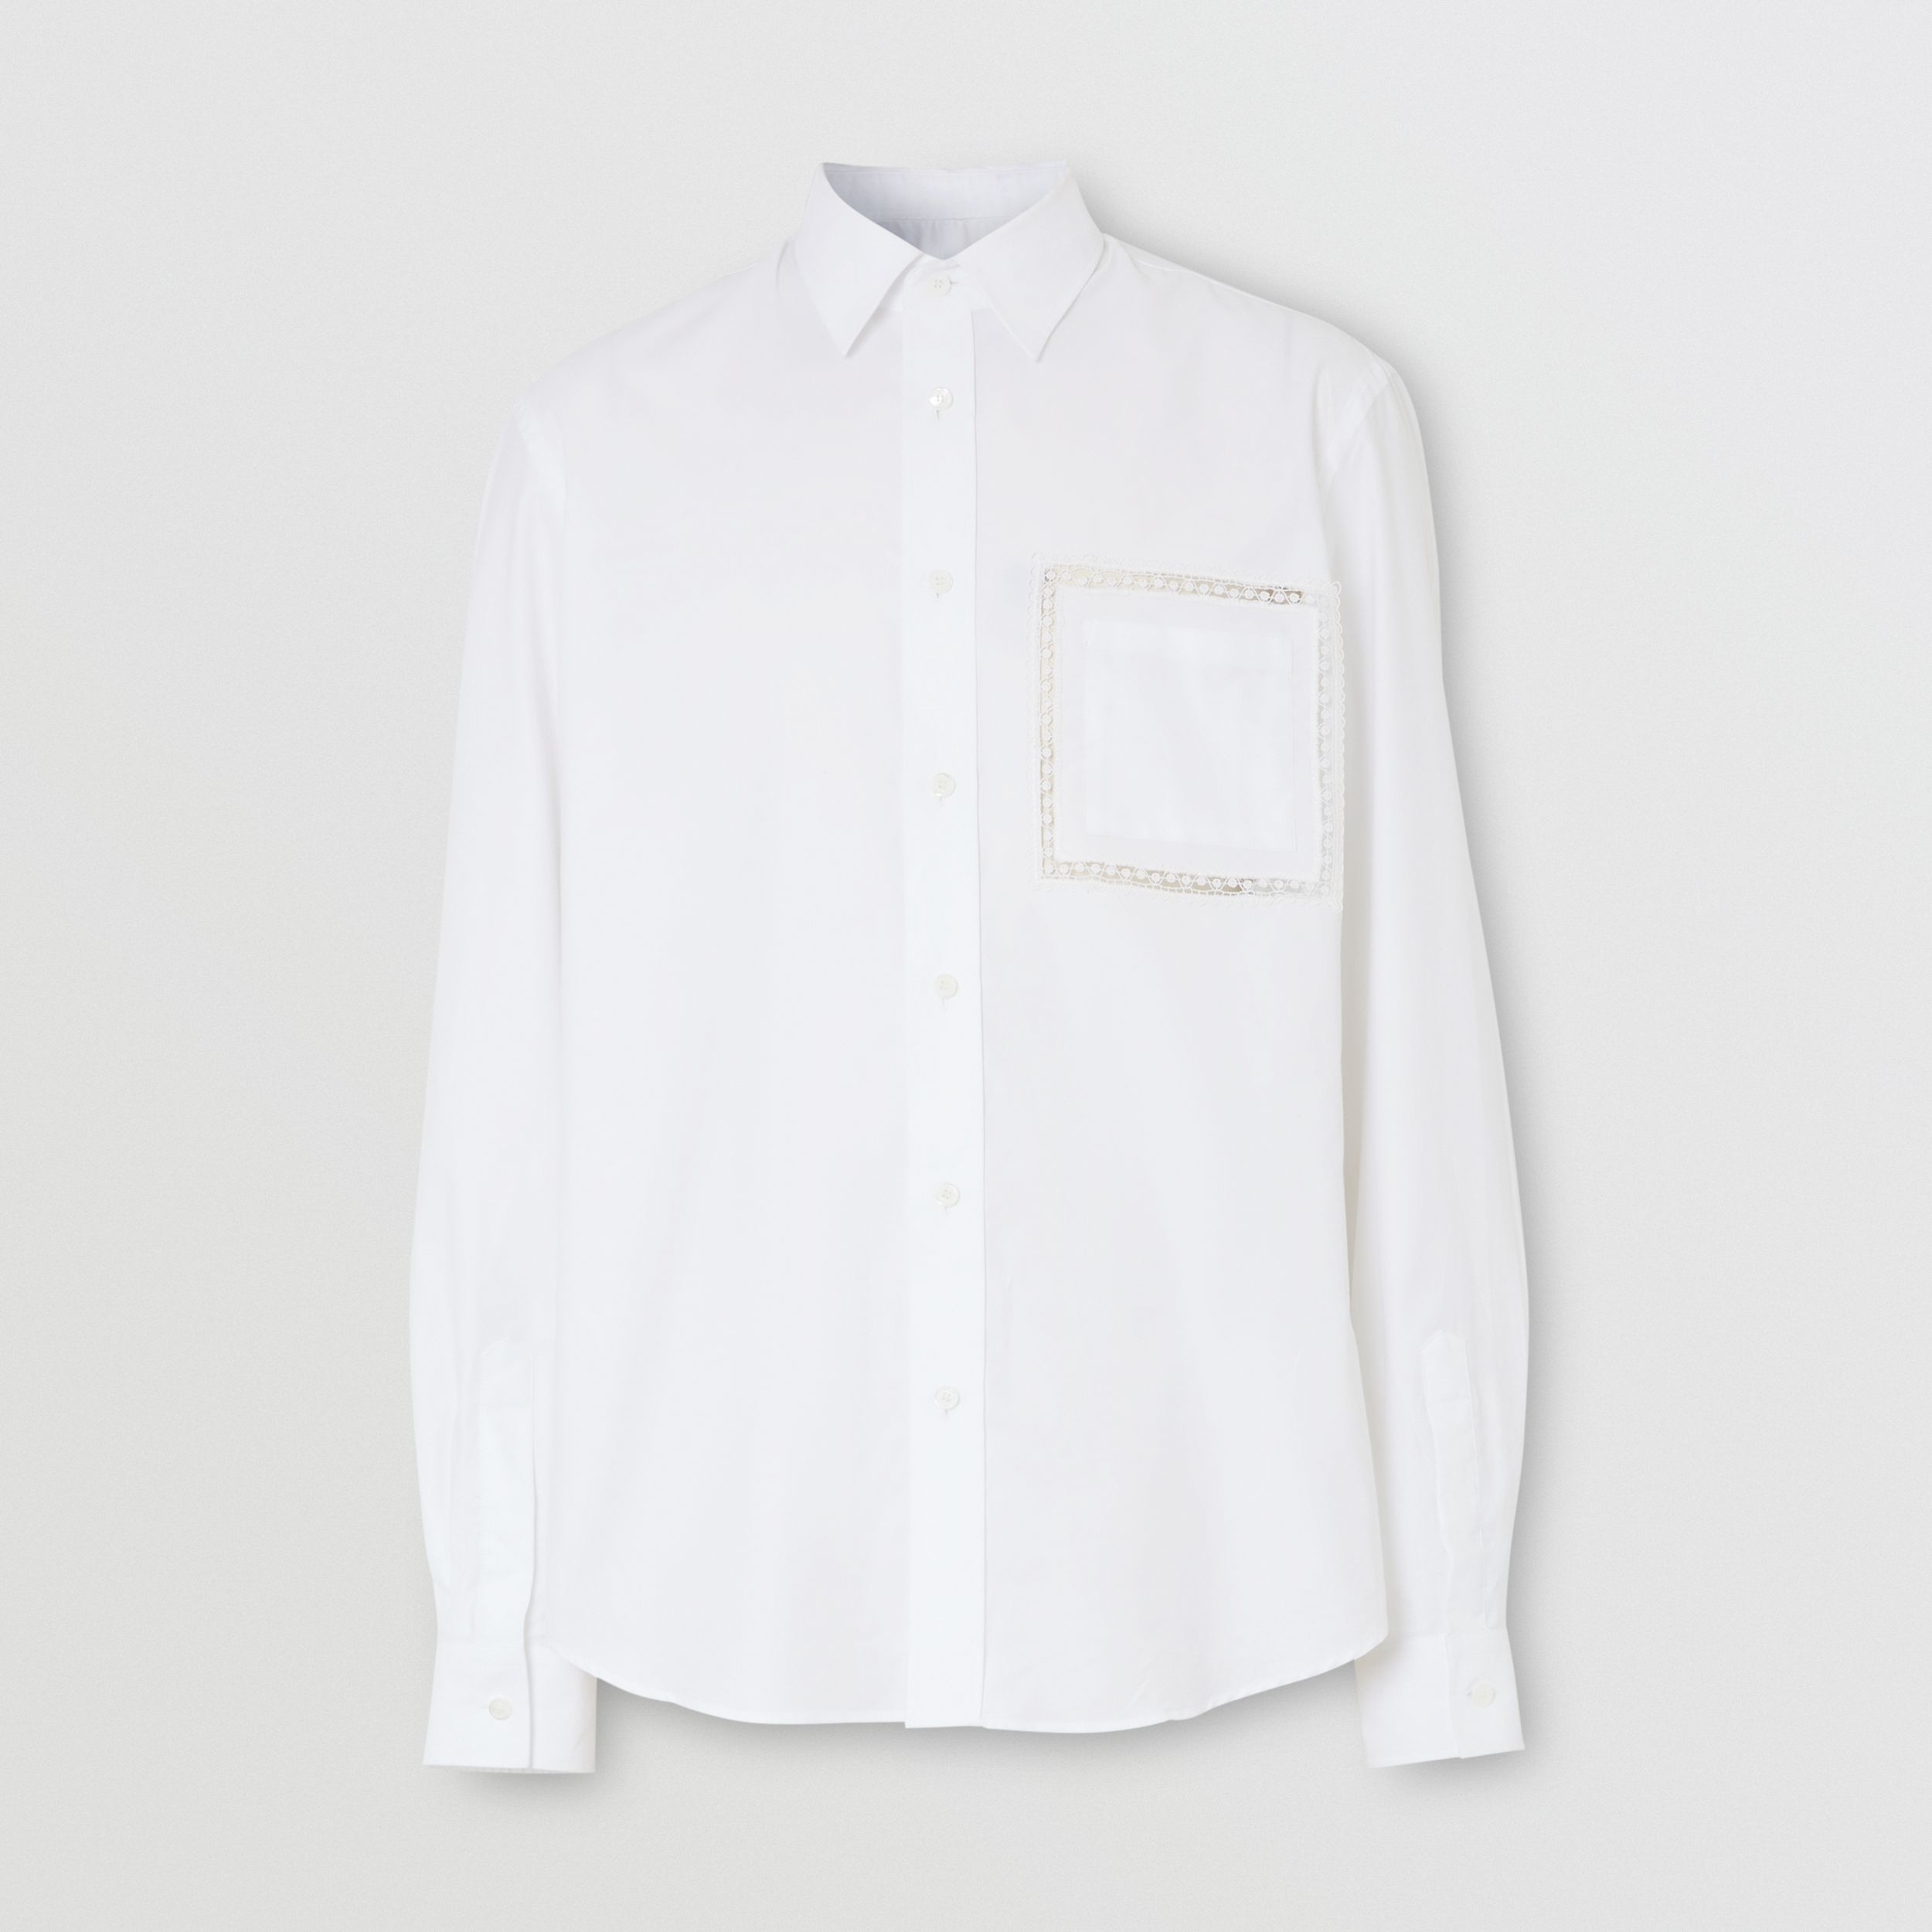 Classic Fit Lace Detail Cotton Poplin Oxford Shirt in Optic White | Burberry - 4